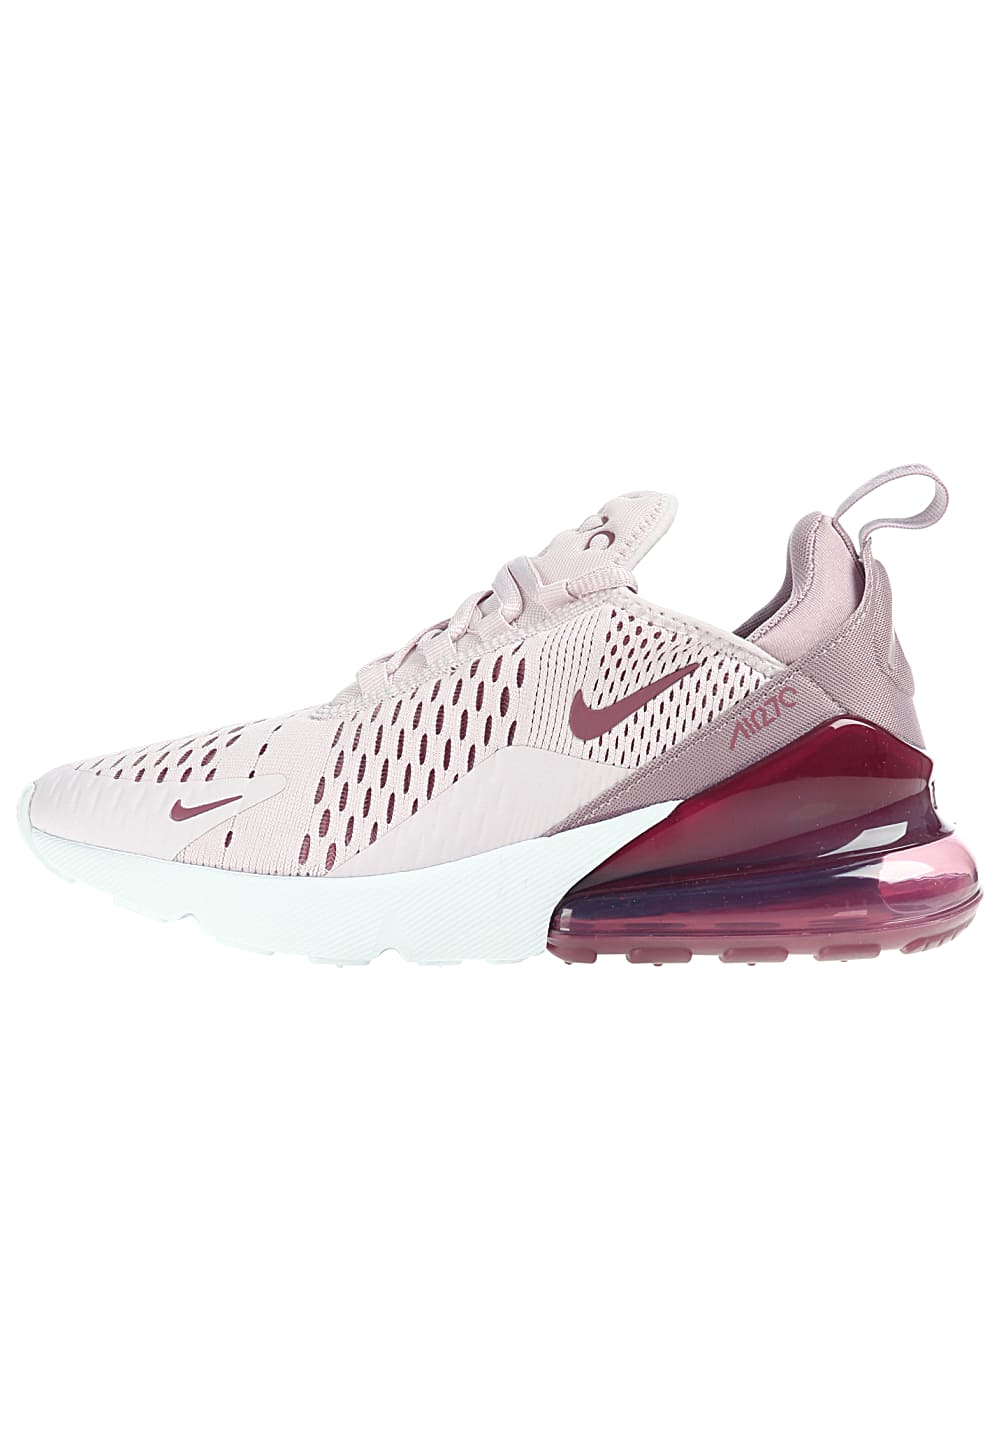 professional sale low priced free delivery NIKE SPORTSWEAR Air Max 270 - Sneaker für Damen - Pink